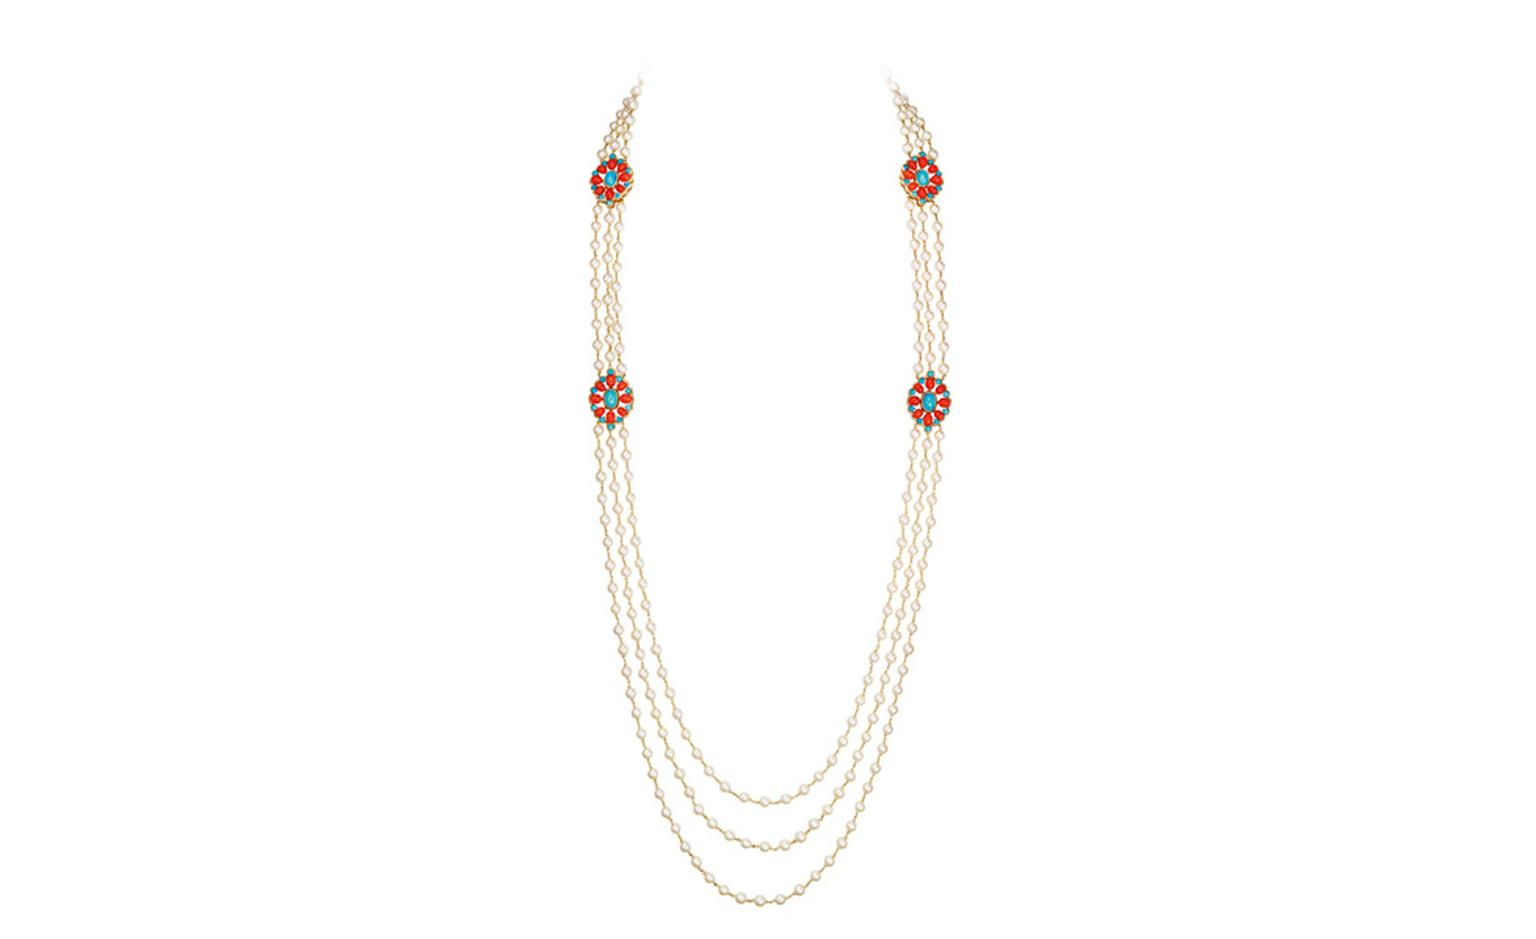 BOUCHERON. Paraggi necklace, set with round cultured pearls, round turquoise and oval red corals, on pink gold. POA